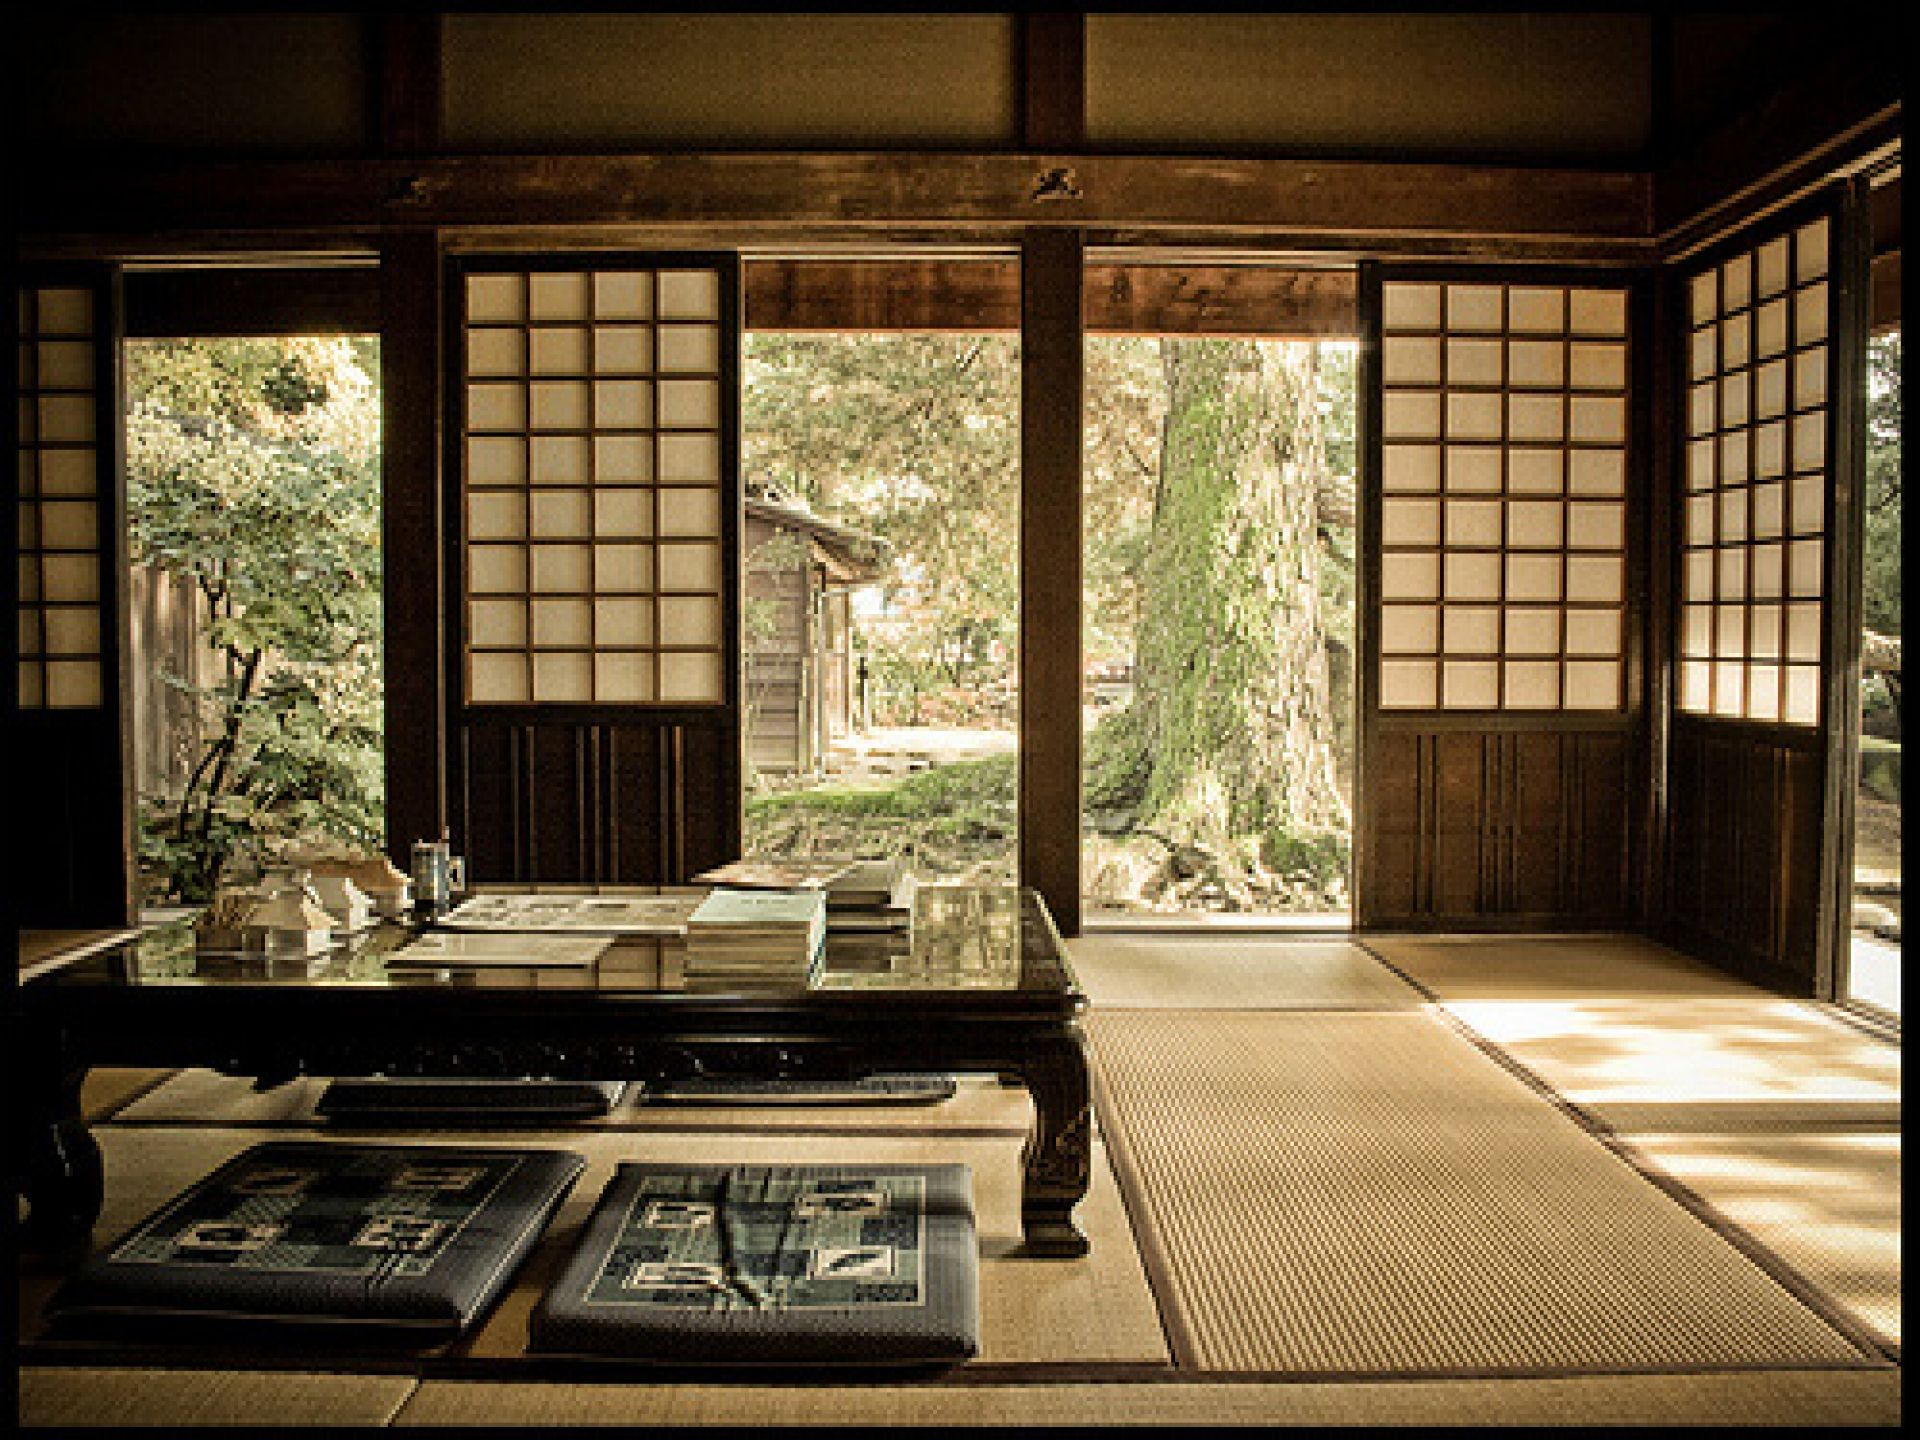 Interior Design Rustic Japanese Small House Design Plans Japanese .